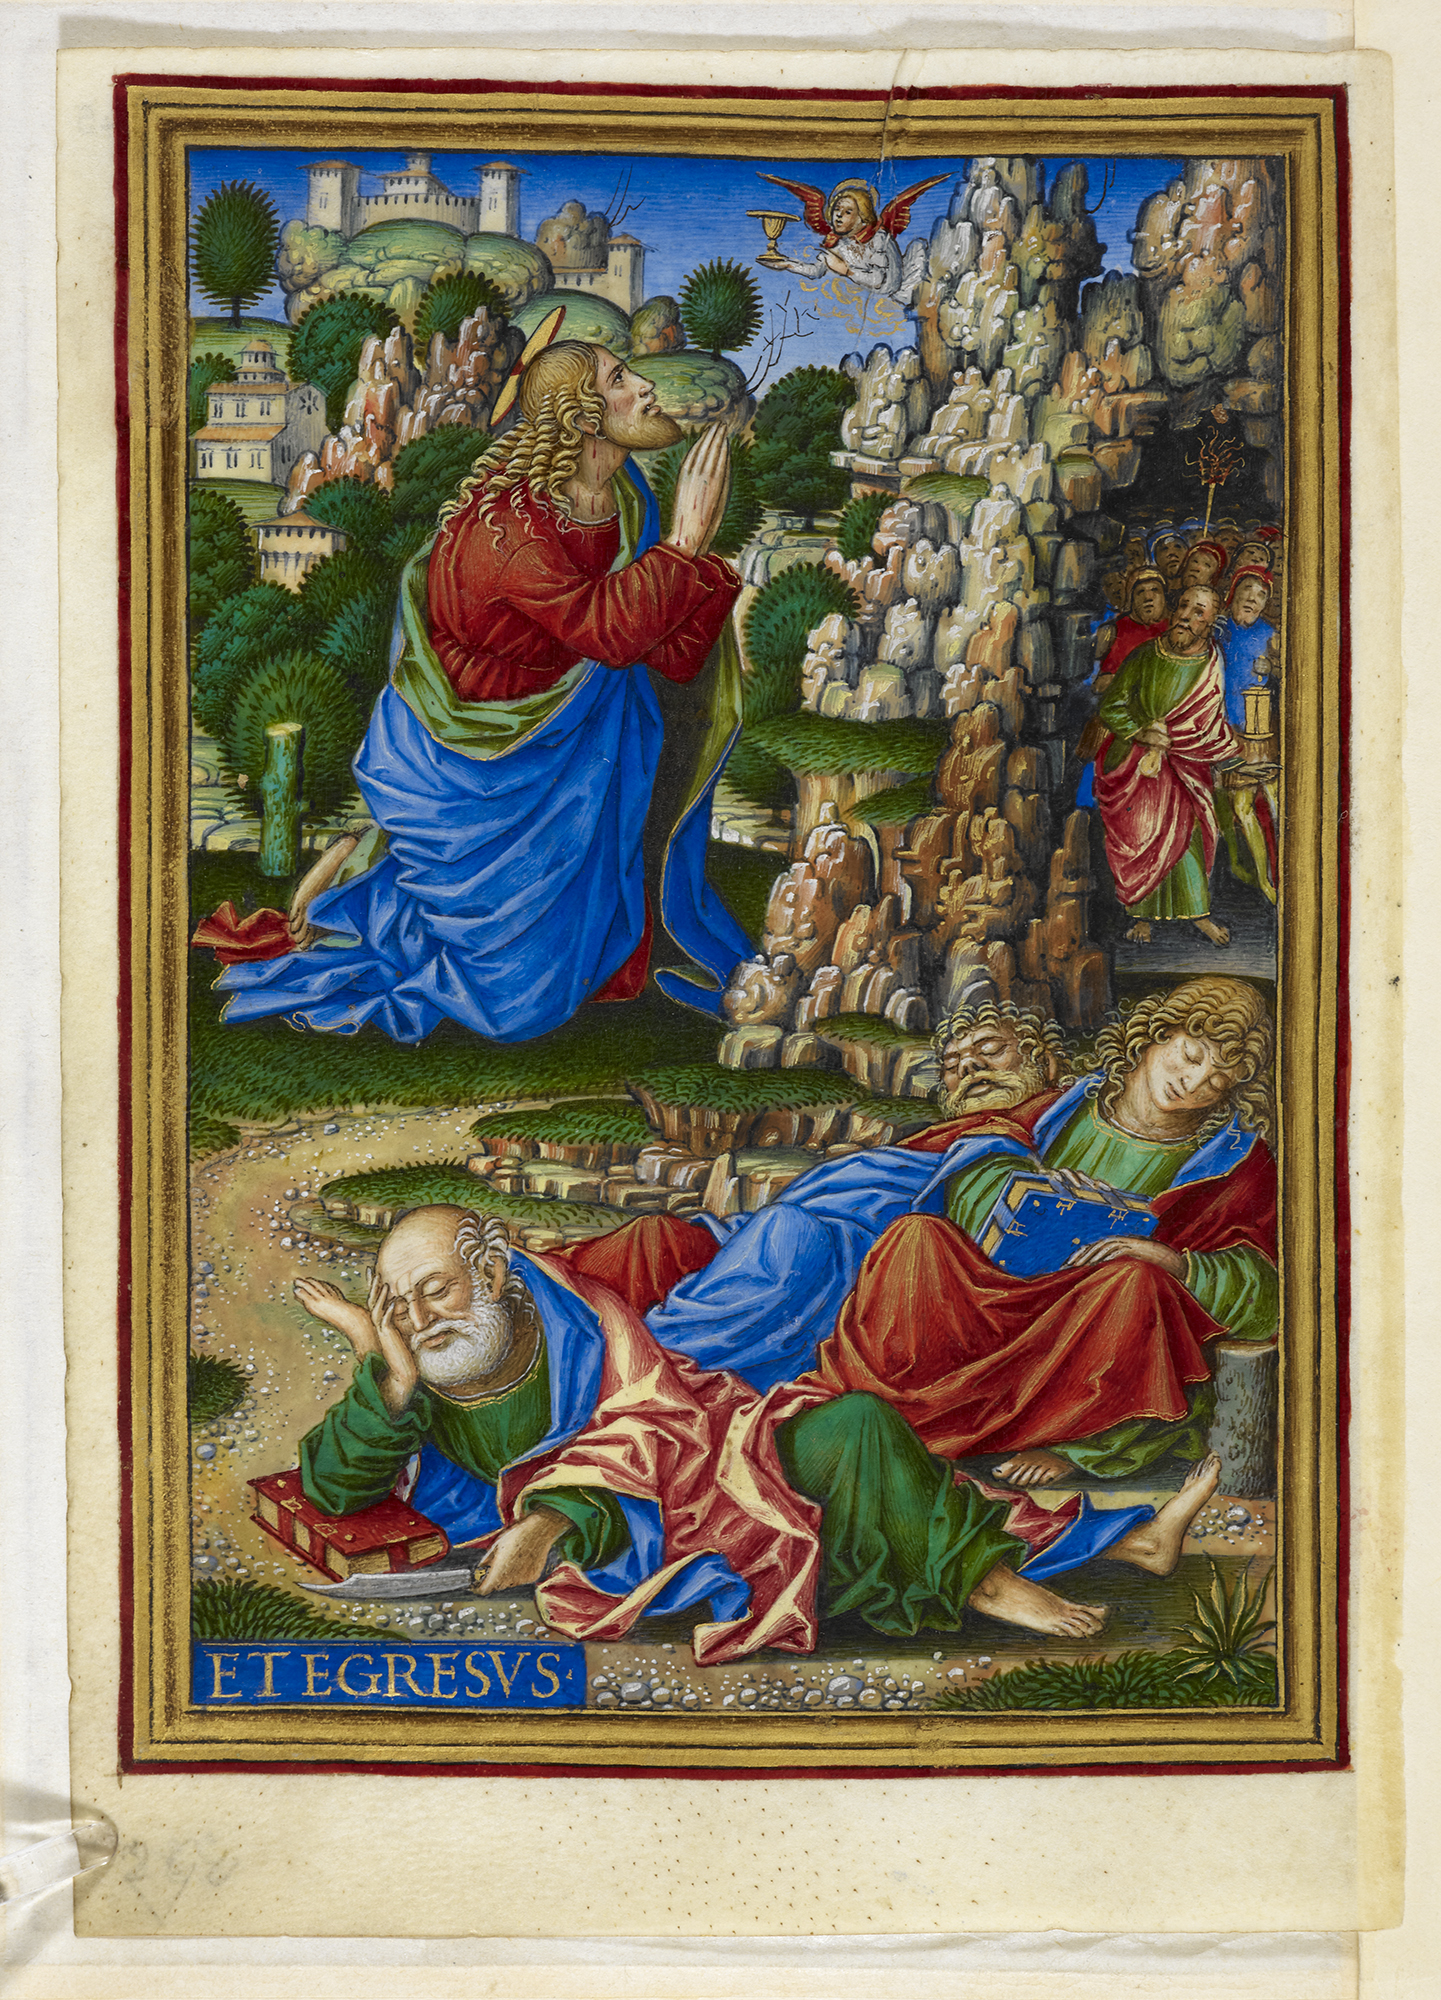 A painting in the Sforza Hours showing Jesus praying in the Garden of Gethsemane. Giovan Pietro Birago. Milan, c. 1490